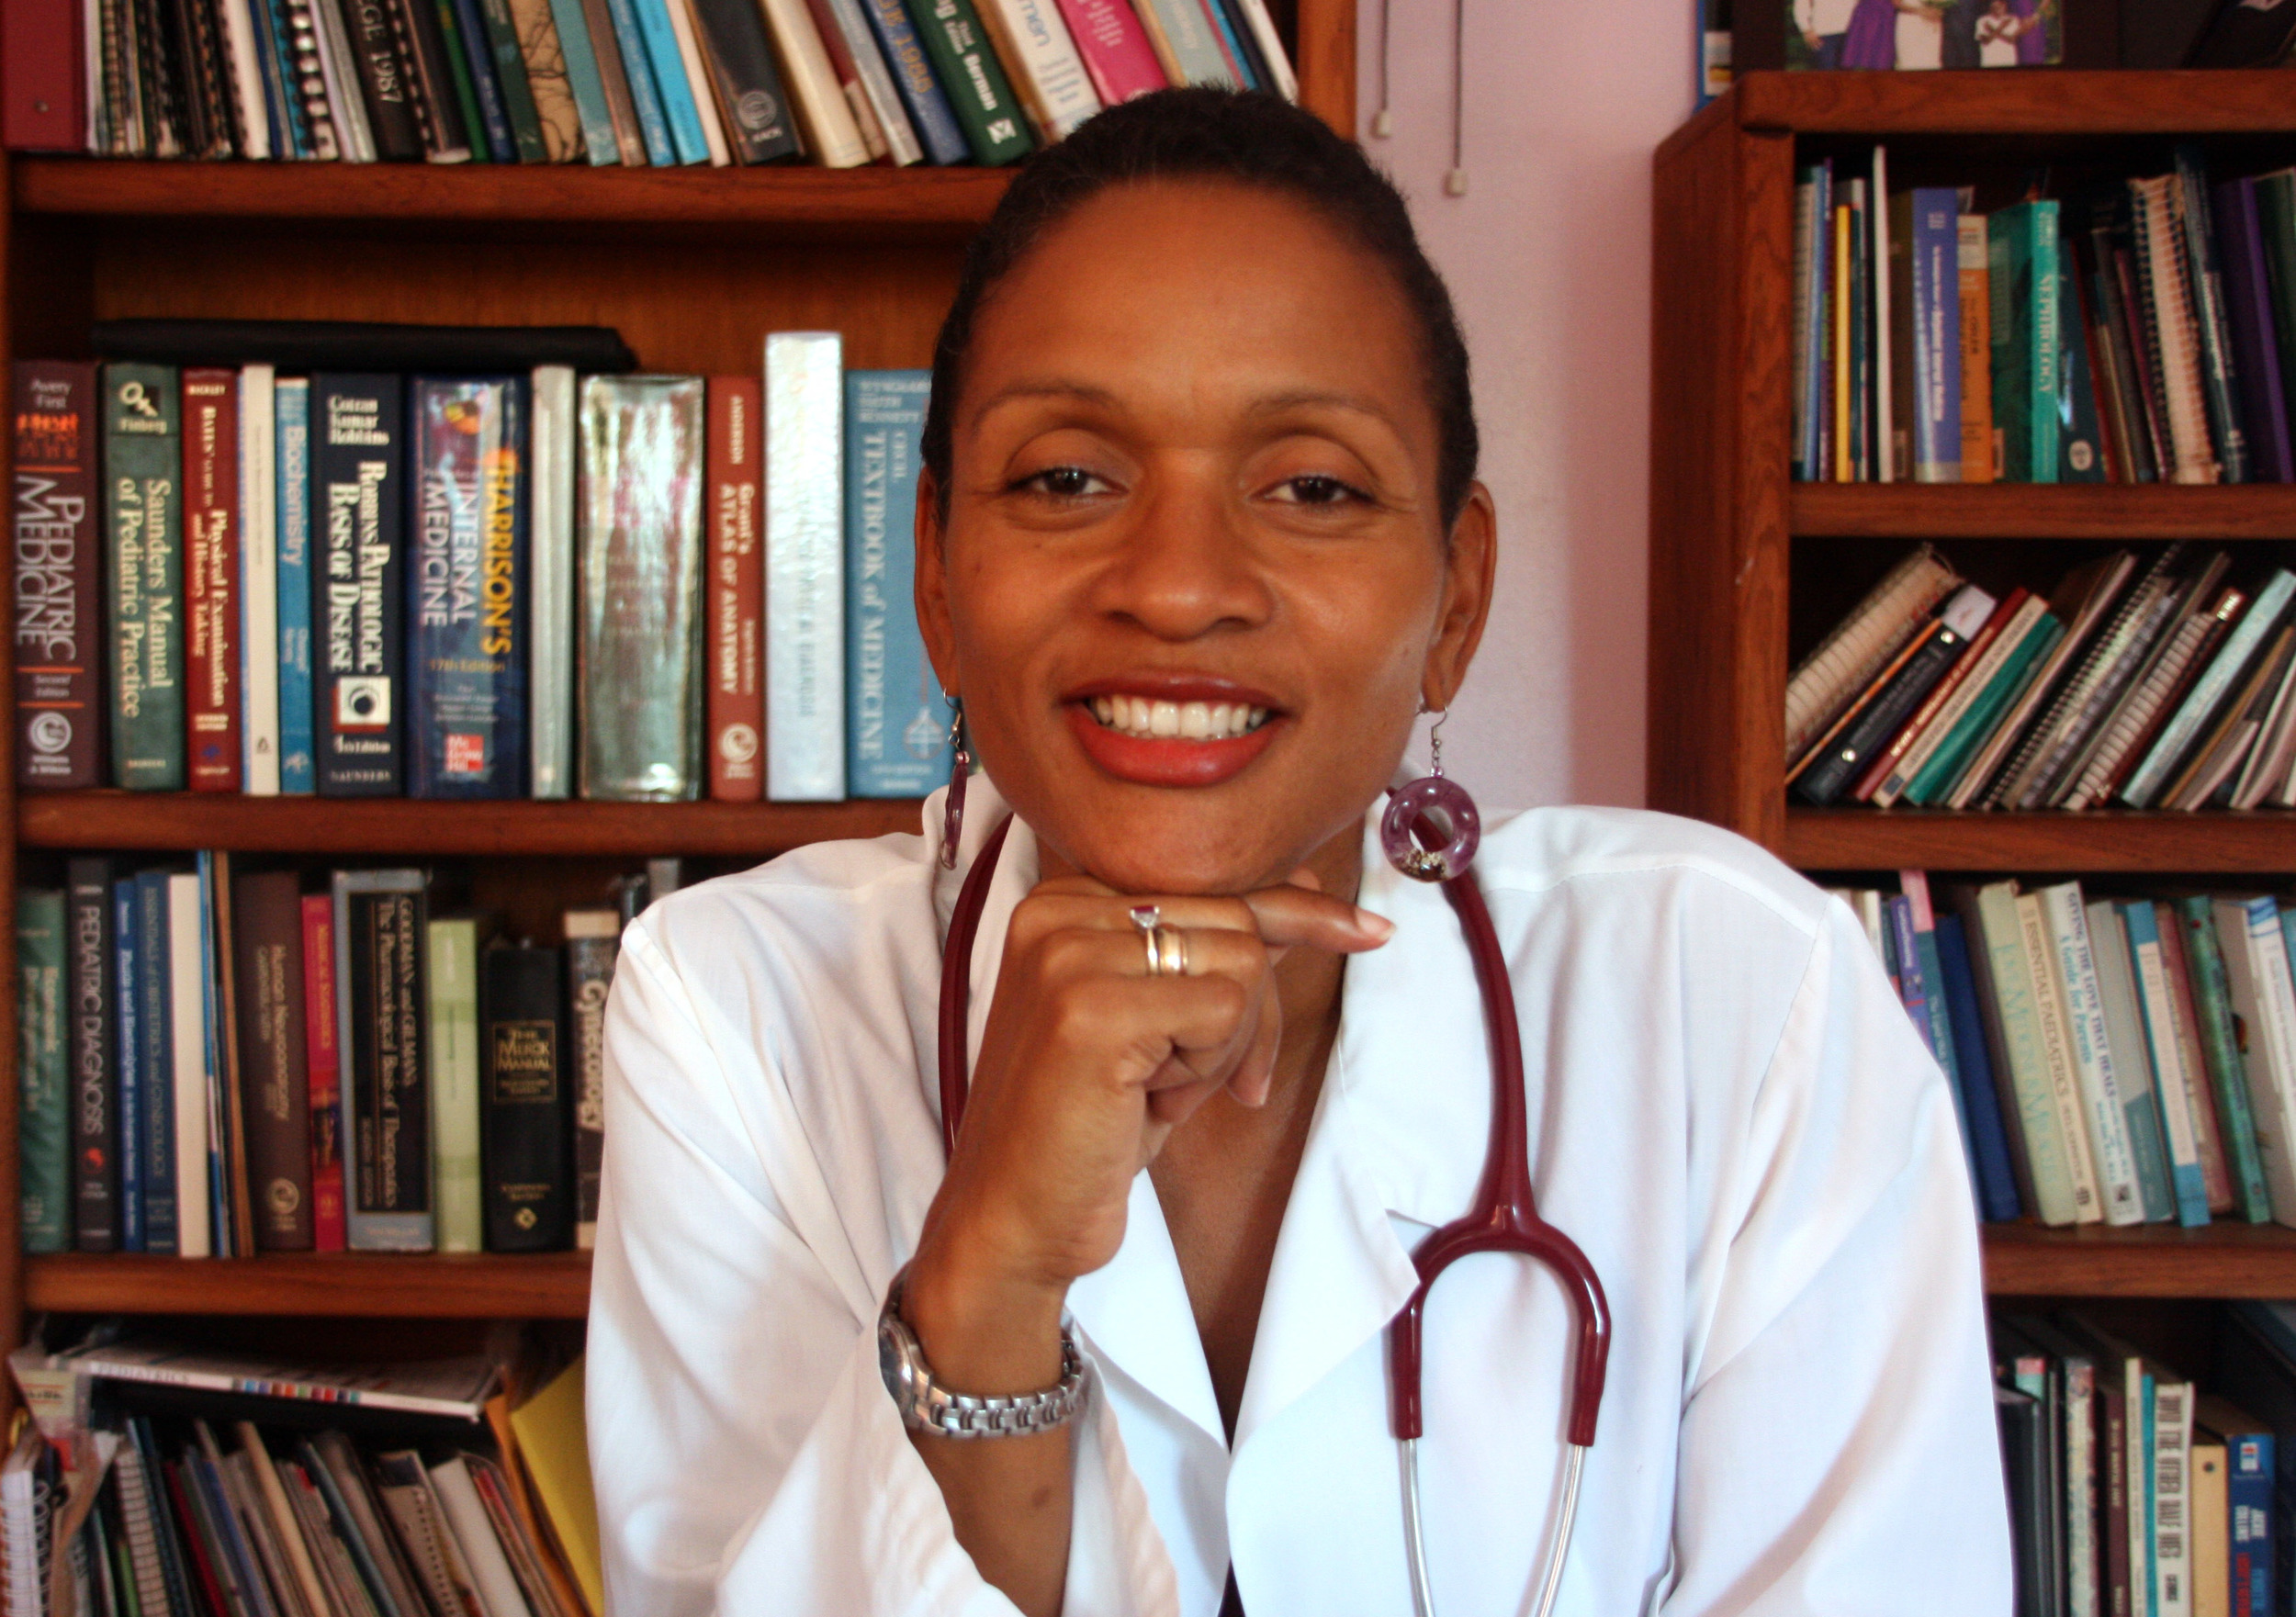 Kecia Brooks-Smith-Lowe MD MPH FAAP FACP is certified by both the American Board of Pediatrics and Internal Medicine.